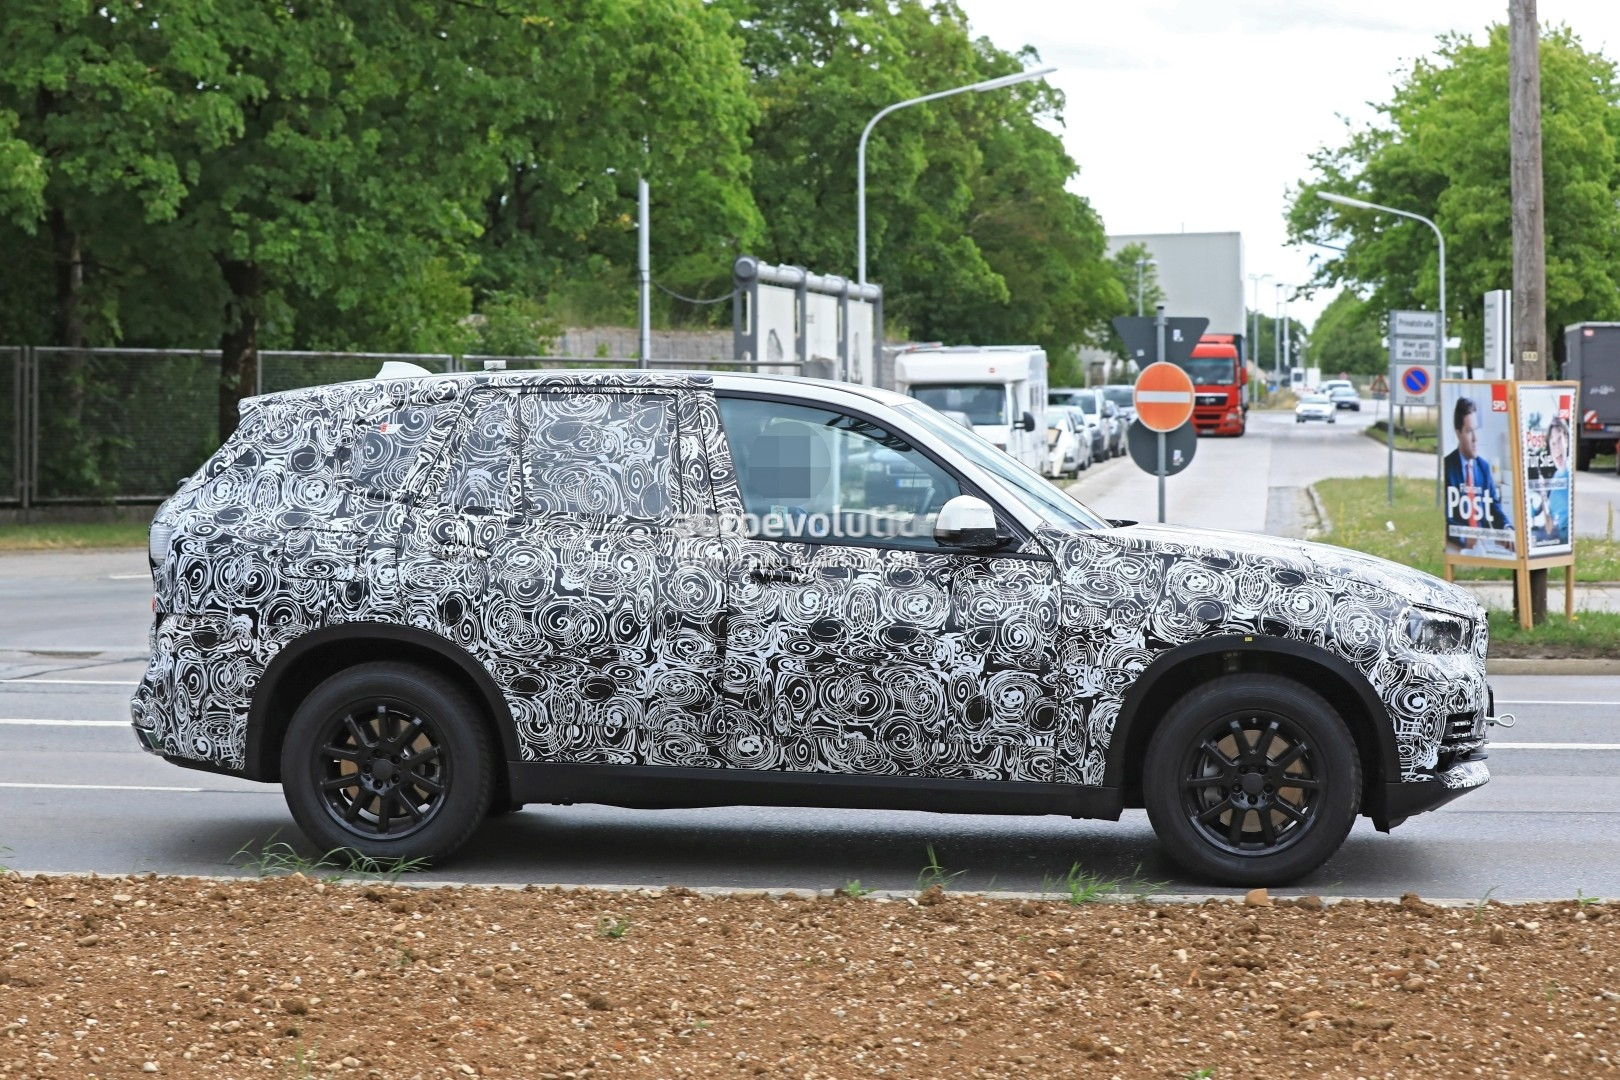 2019-bmw-x5-spied-prototype-reveals-new-angular-design-front-air-intakes_6